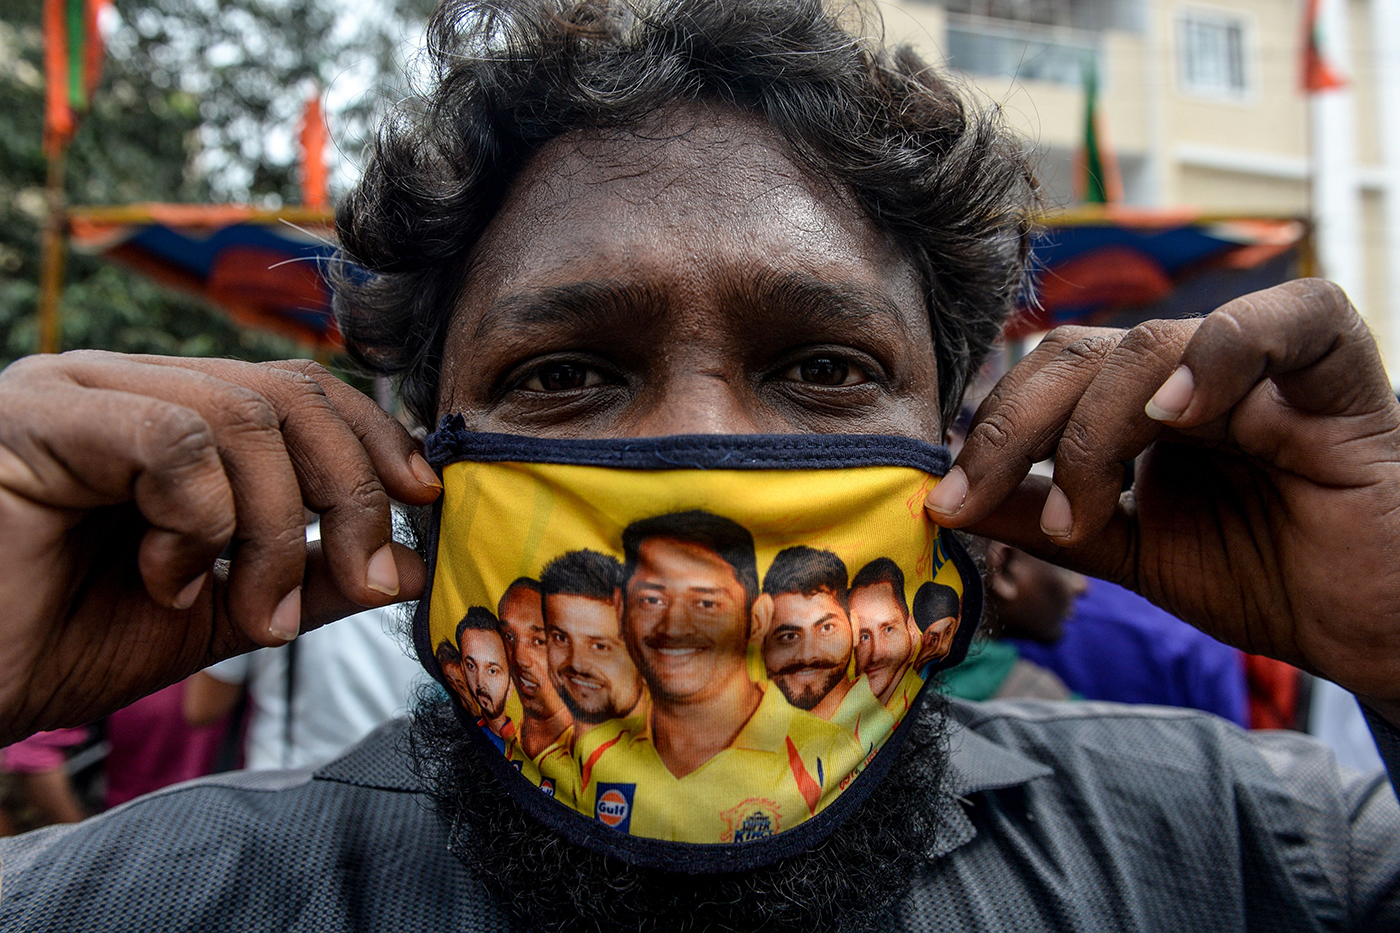 A man wears a mask featuring MS Dhoni and other Chennai Super Kings players